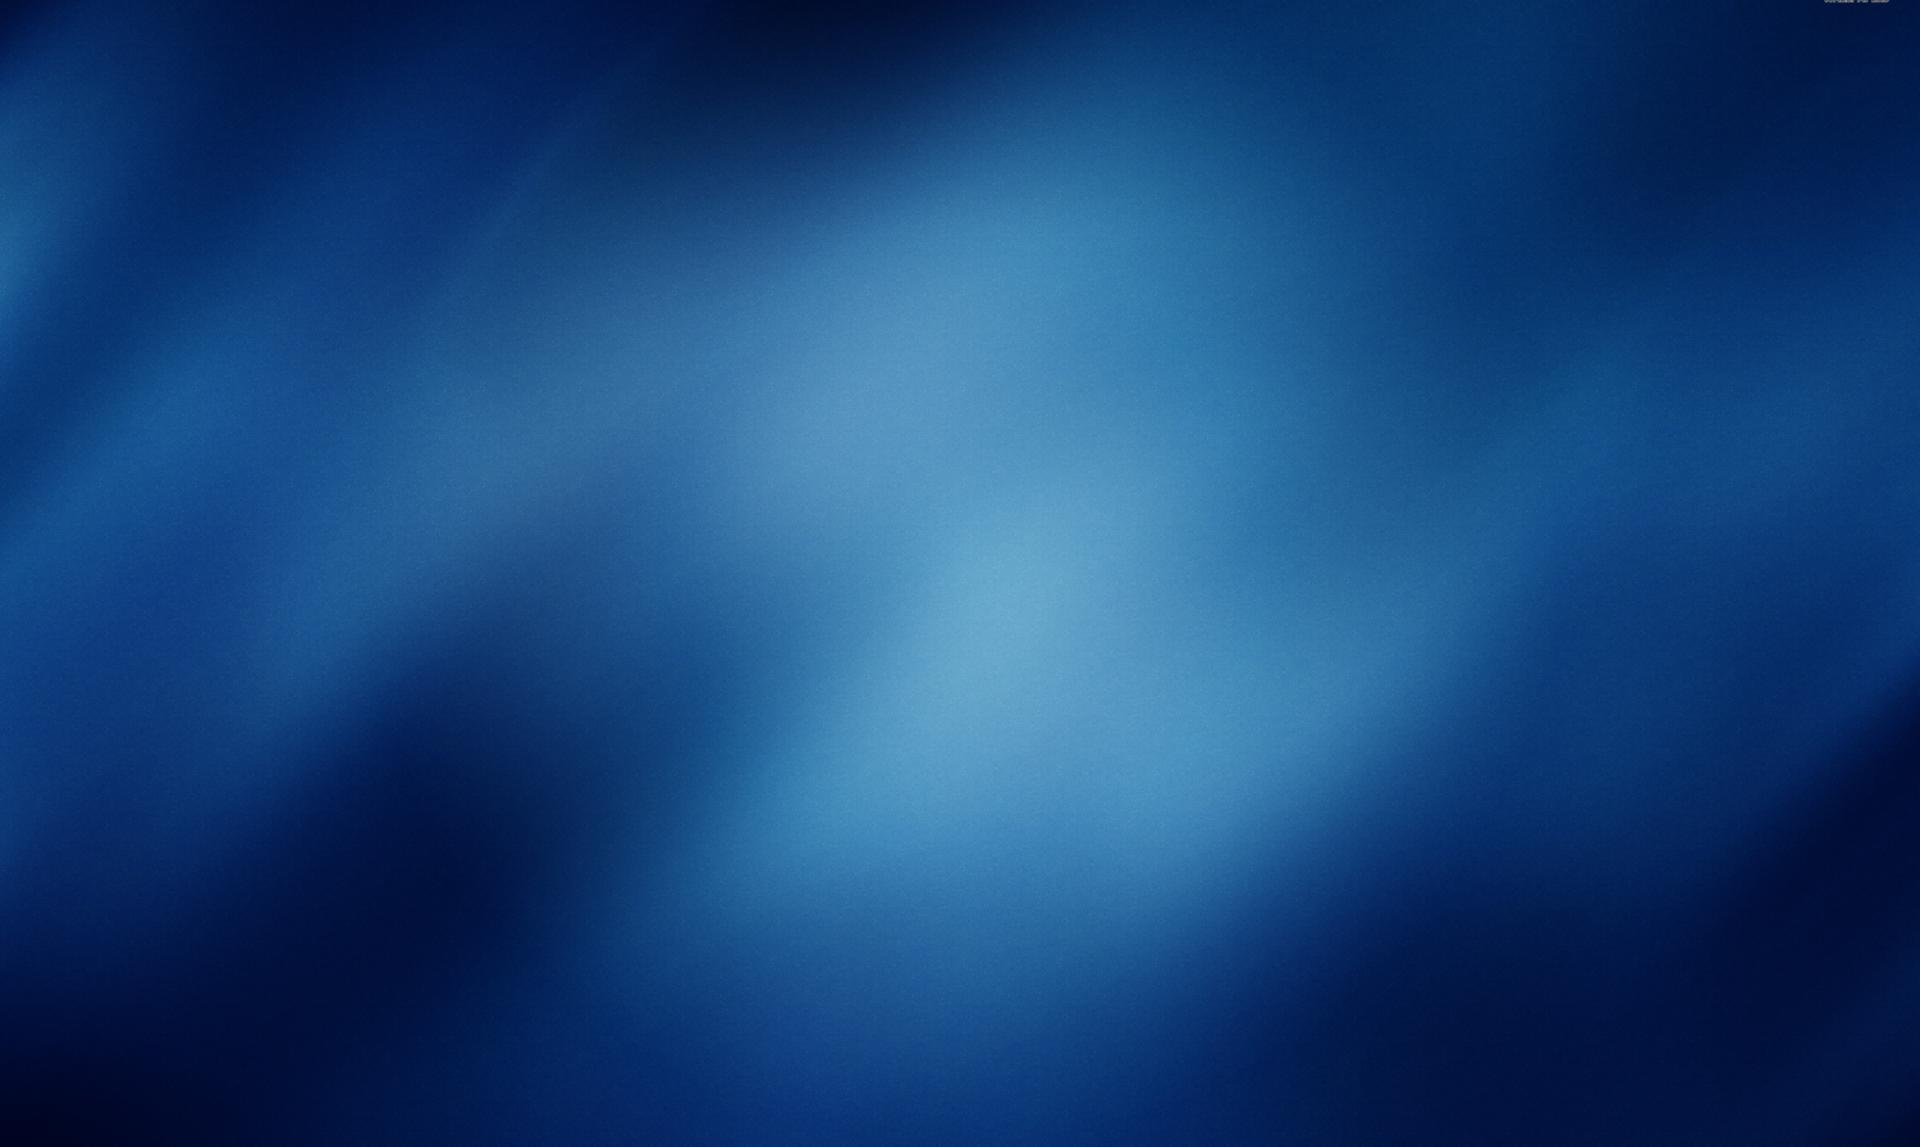 Blue gradient wallpapers HD quality